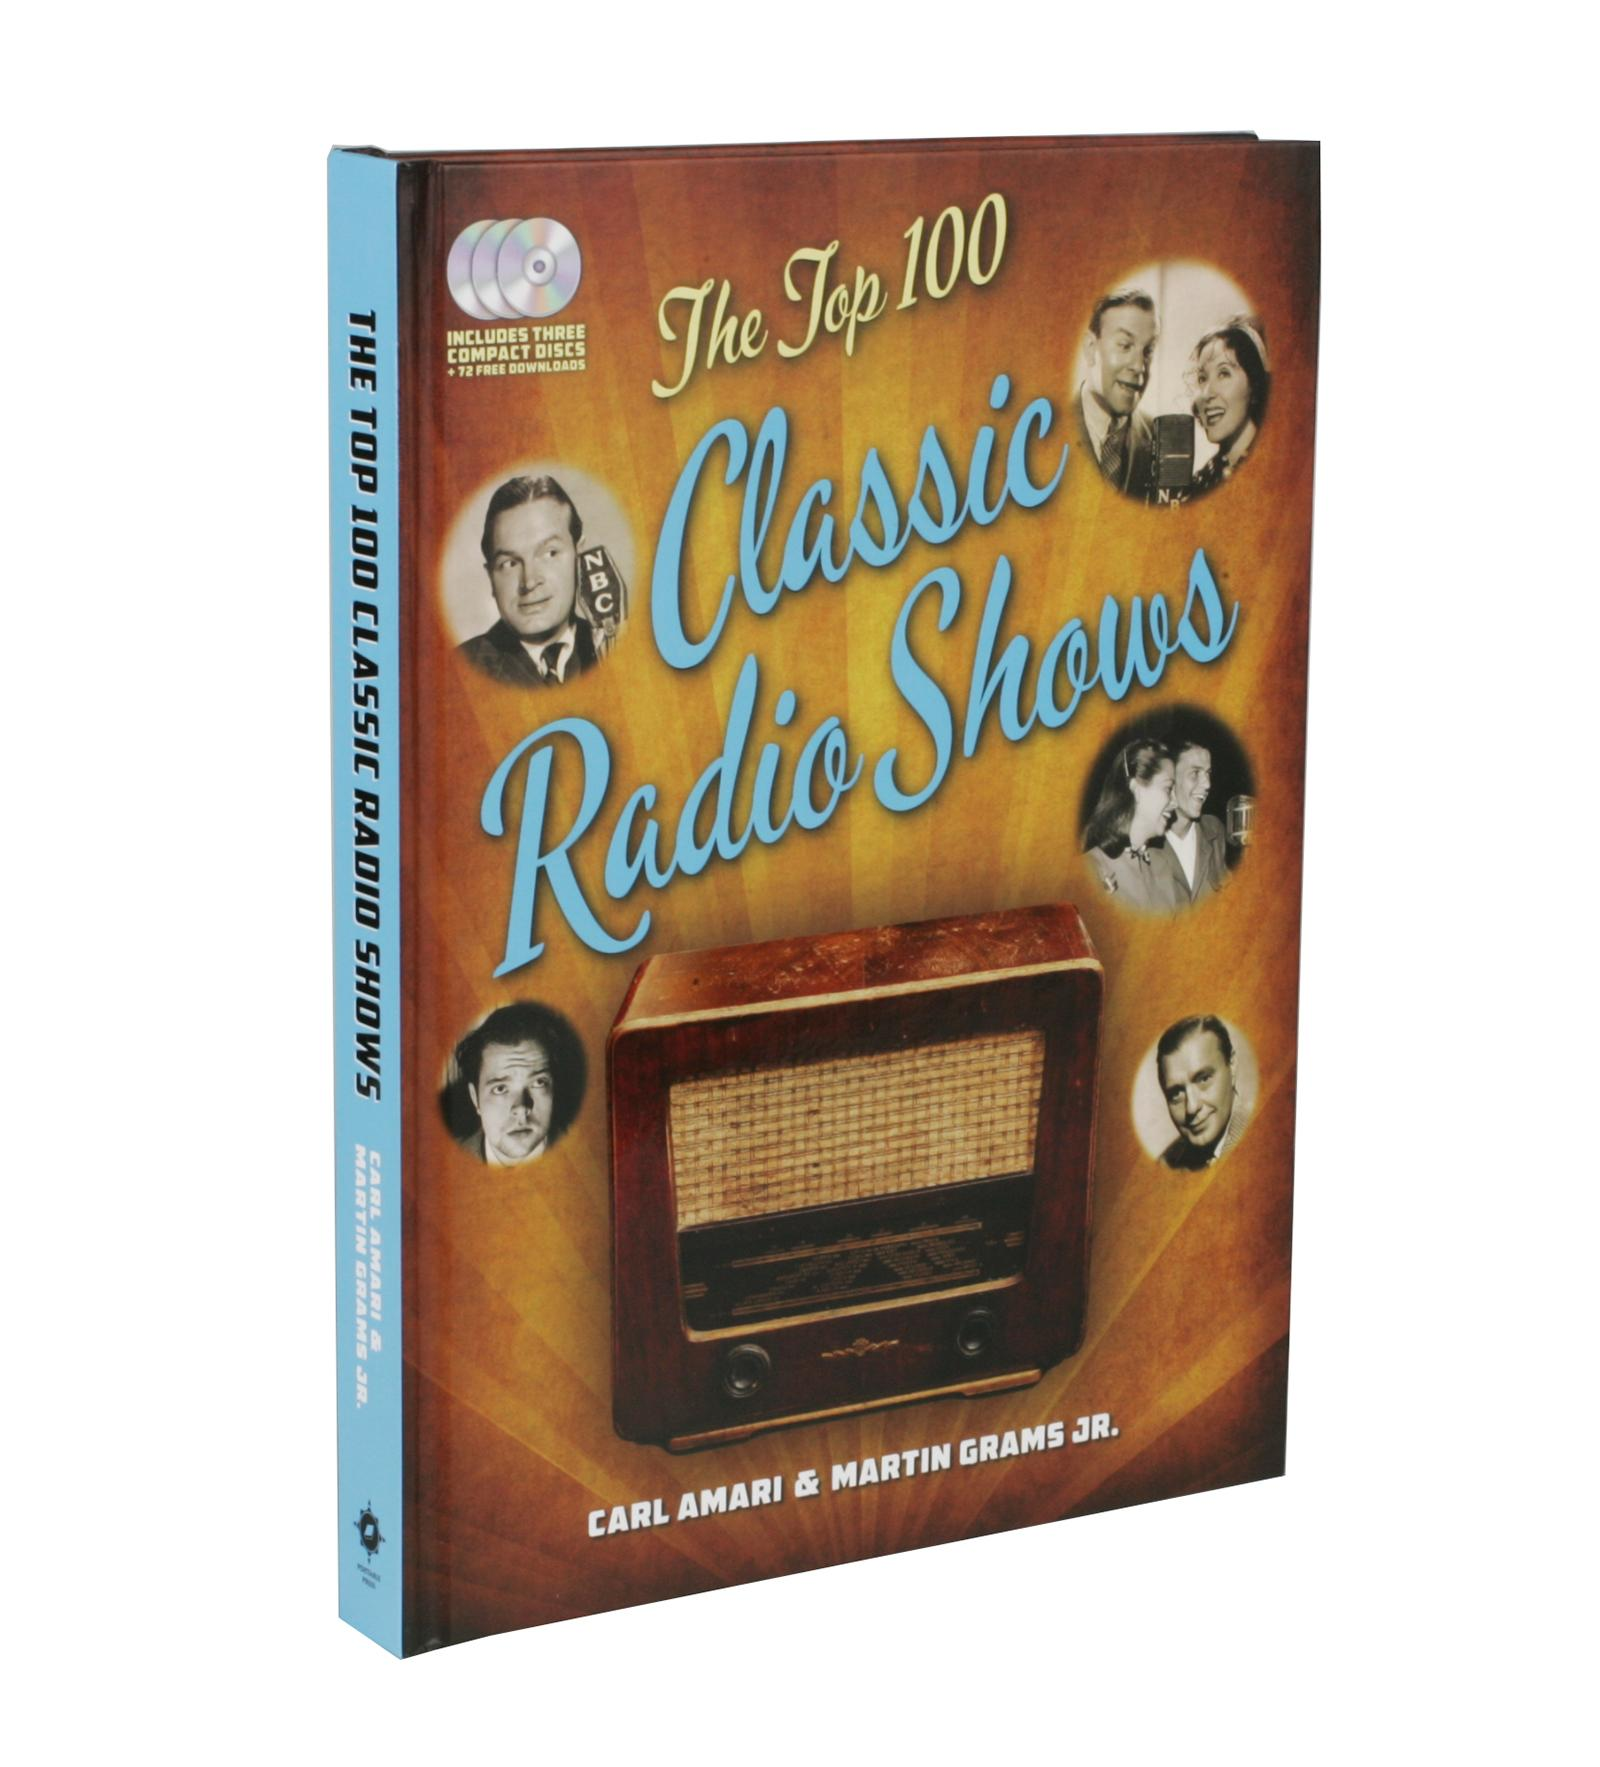 The Top 100 Classic Radio Shows (Hardcover)